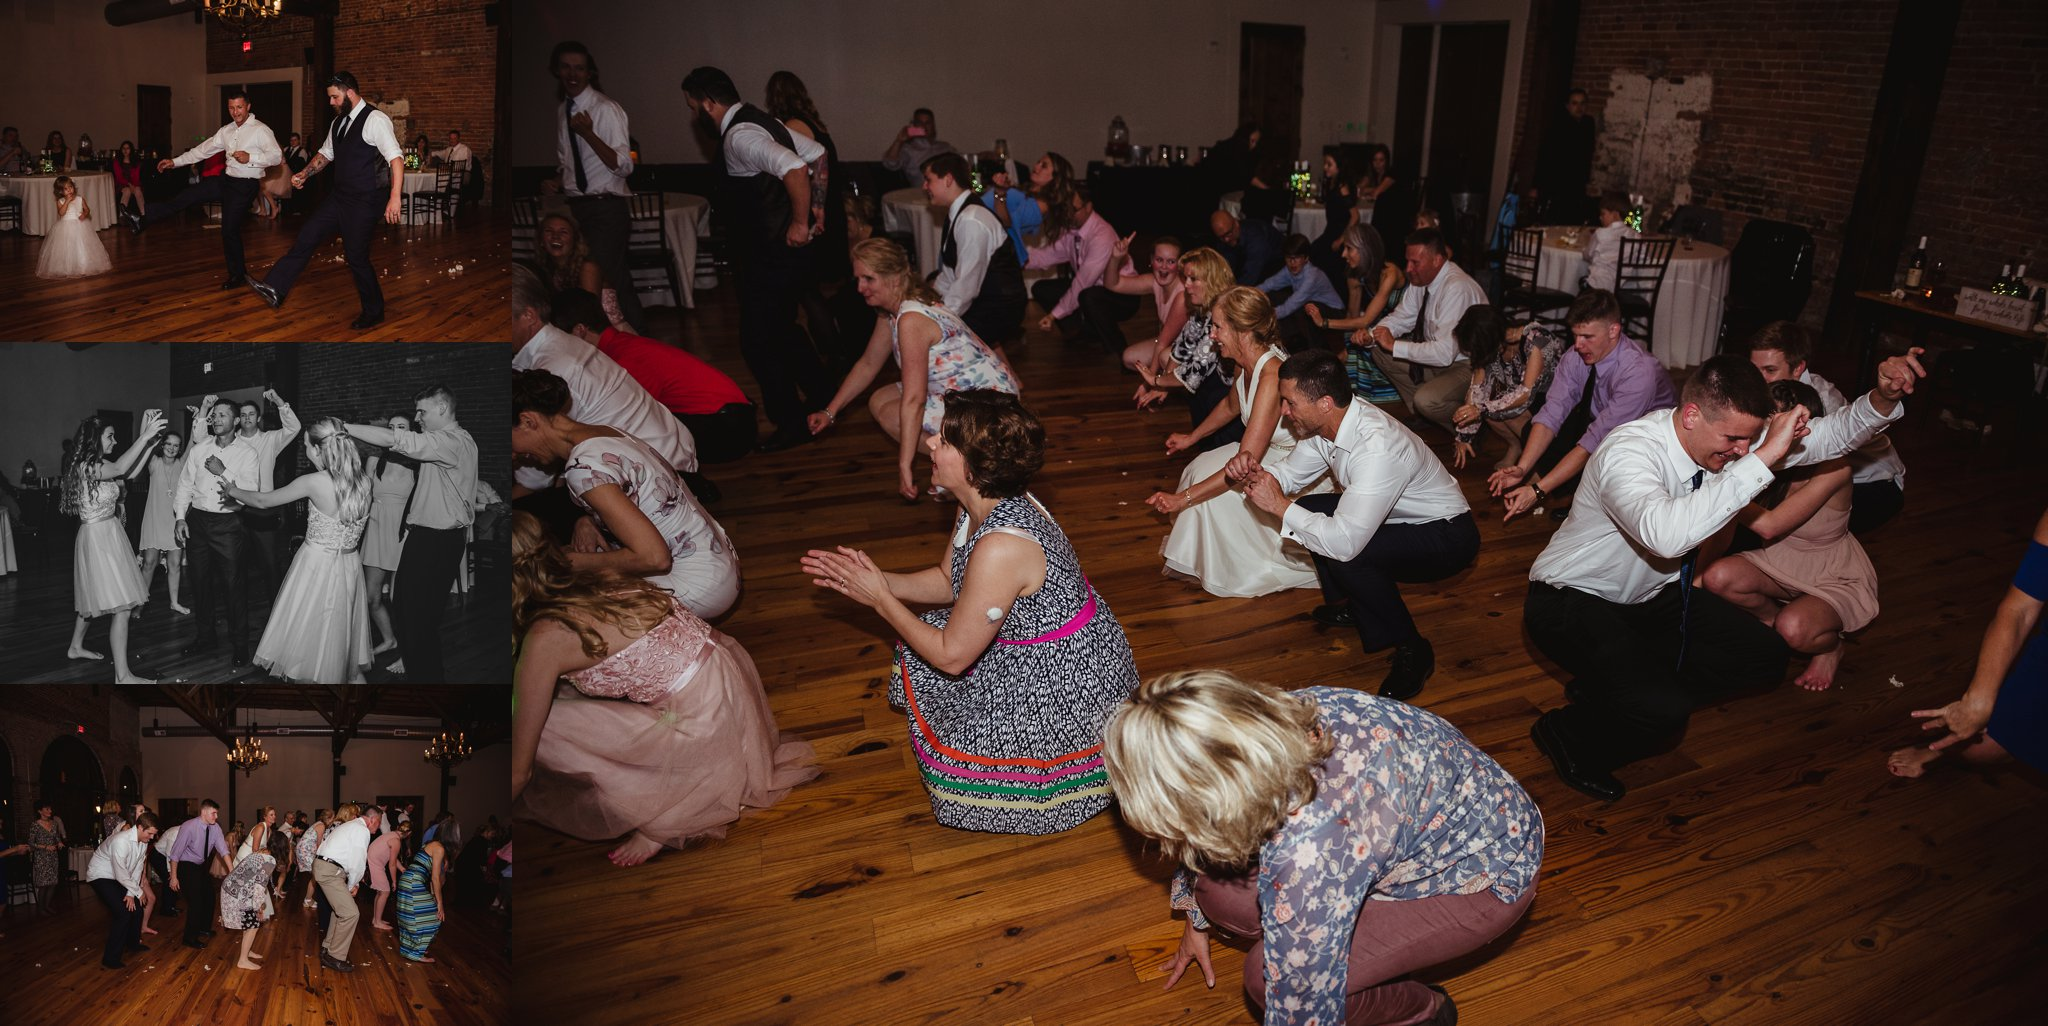 Guests enjoy dancing for the camera of Rose Trail Images at the wedding reception at Cross and Main in Youngsville, NC.